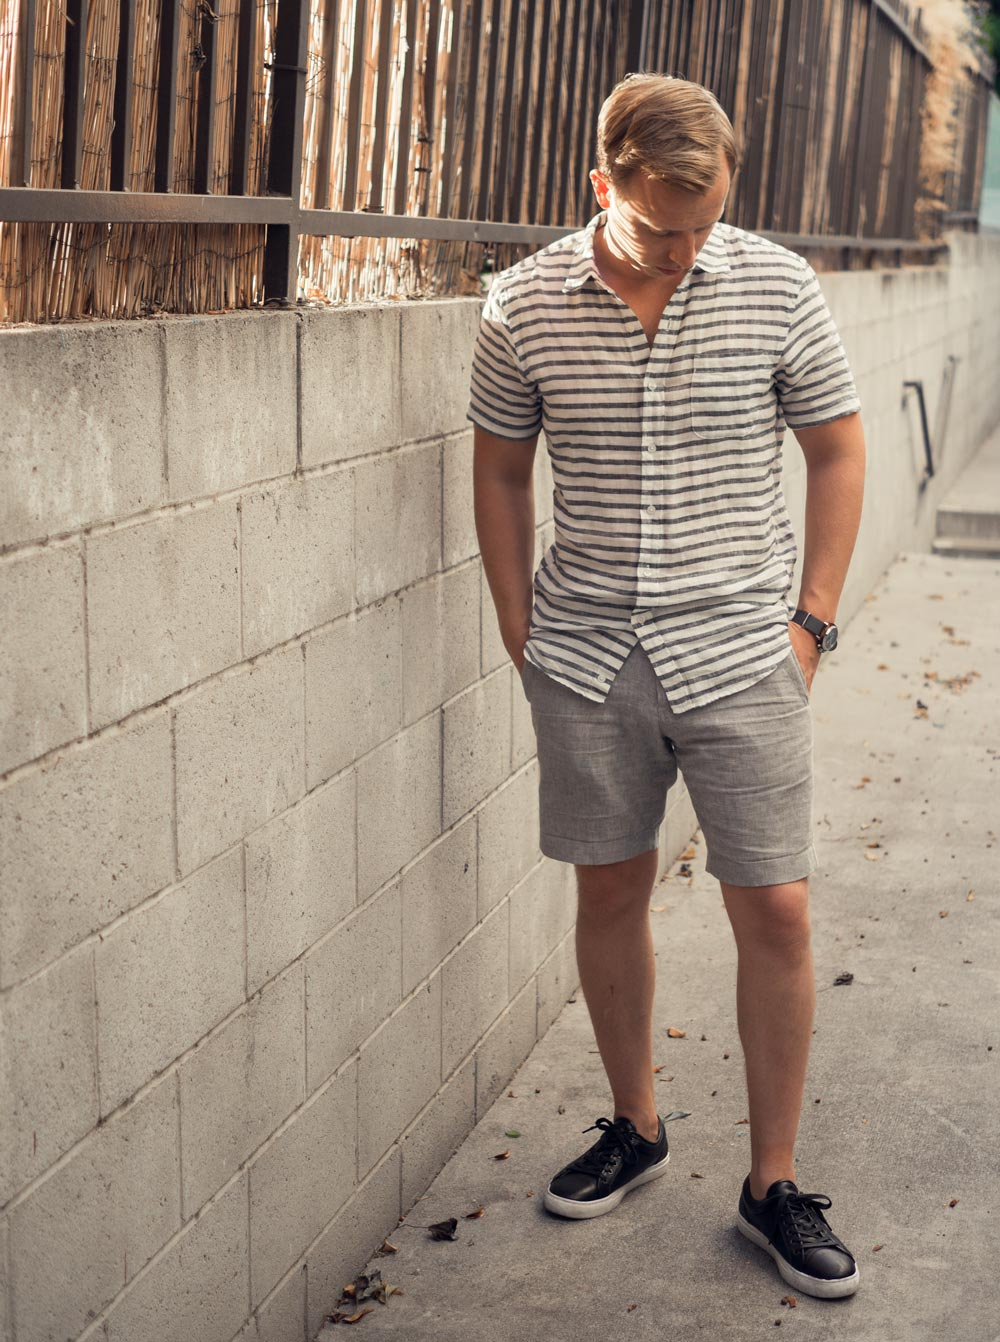 men summer fashion stripe shirt gray shorts black sneakers